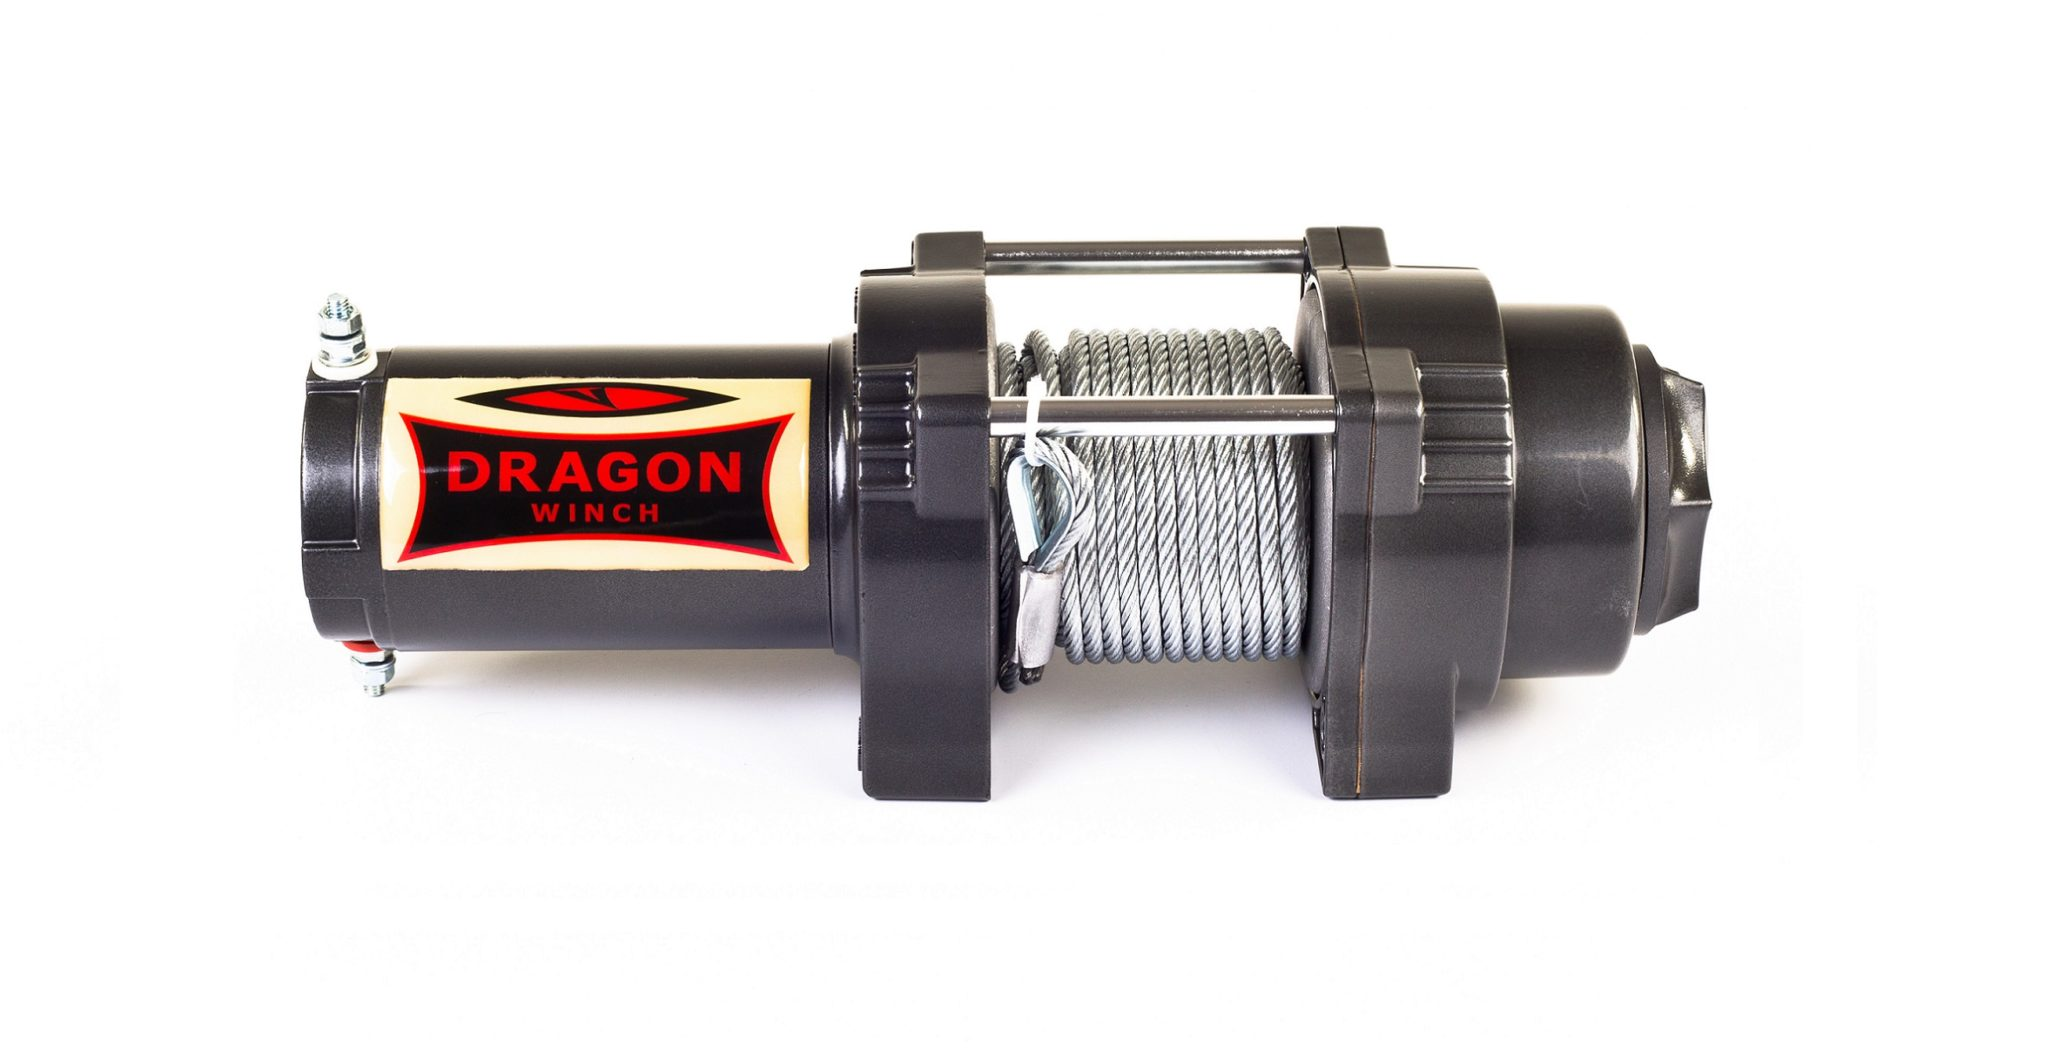 Dragon Winch Seilwinde DWH 2500 HD - 1.133 kg